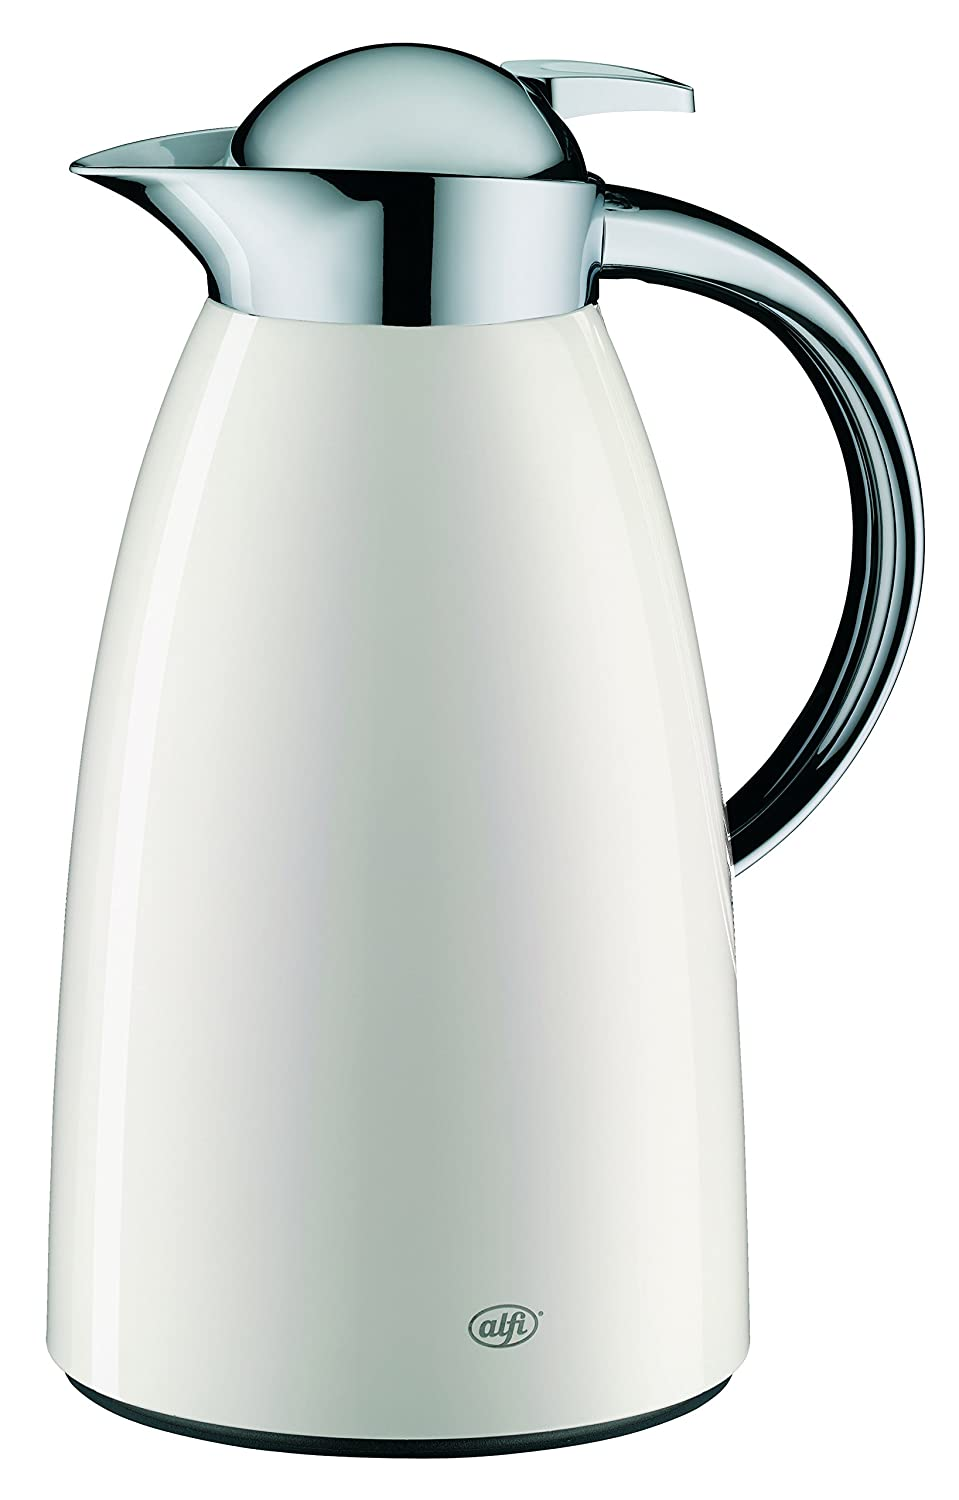 Alfi Signo 1421278100 Insulation Jug - Varnished Stainless Steel - 1 l - Apple Green